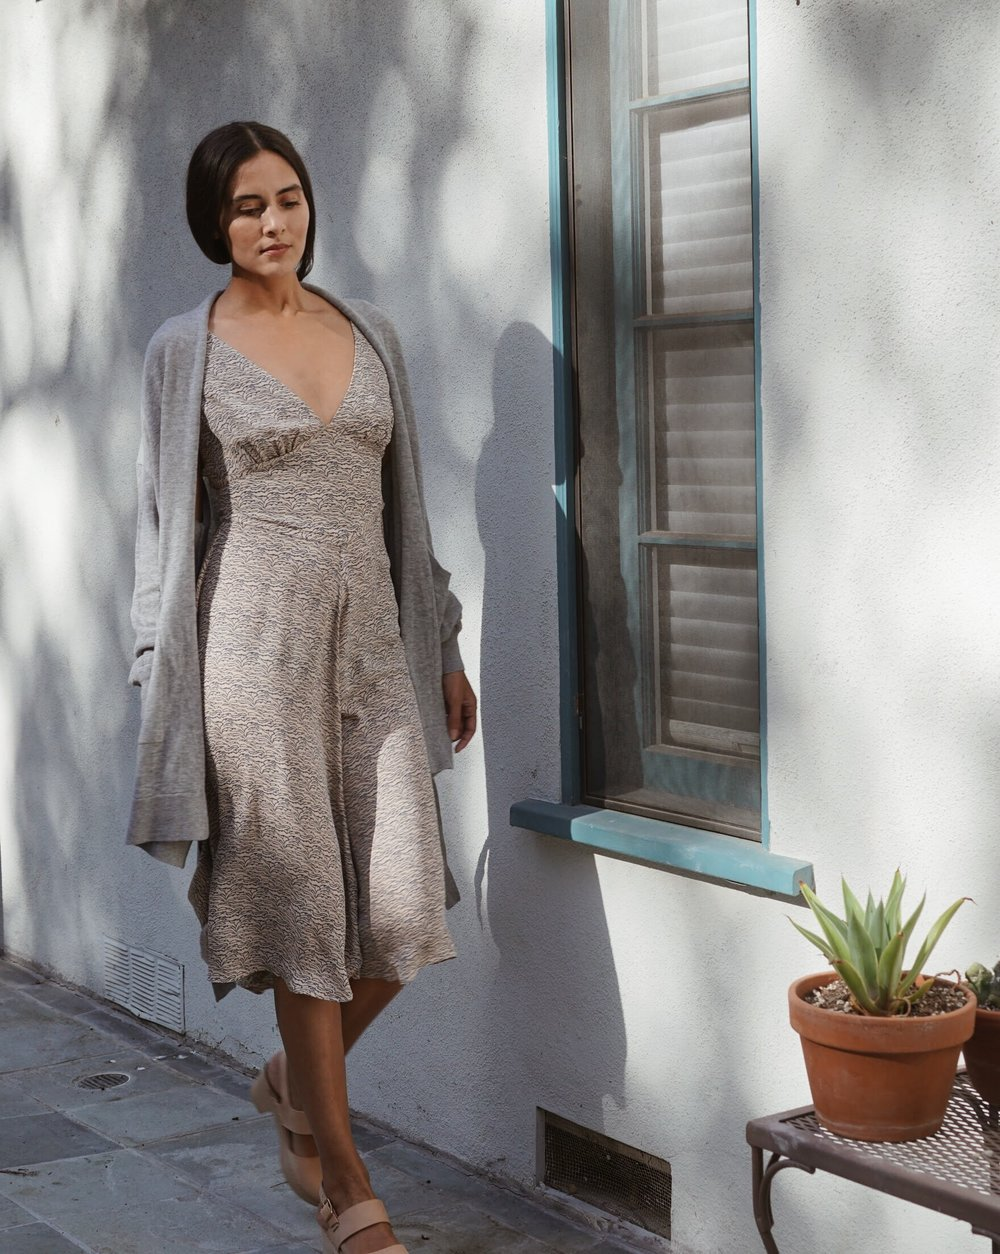 Olga Kapustina  Silk Georgette Slip dress in Print +  Maiyet  Wrap Cardigan in Grey +   Zuzii   Closed Toe Clogs in Natural.